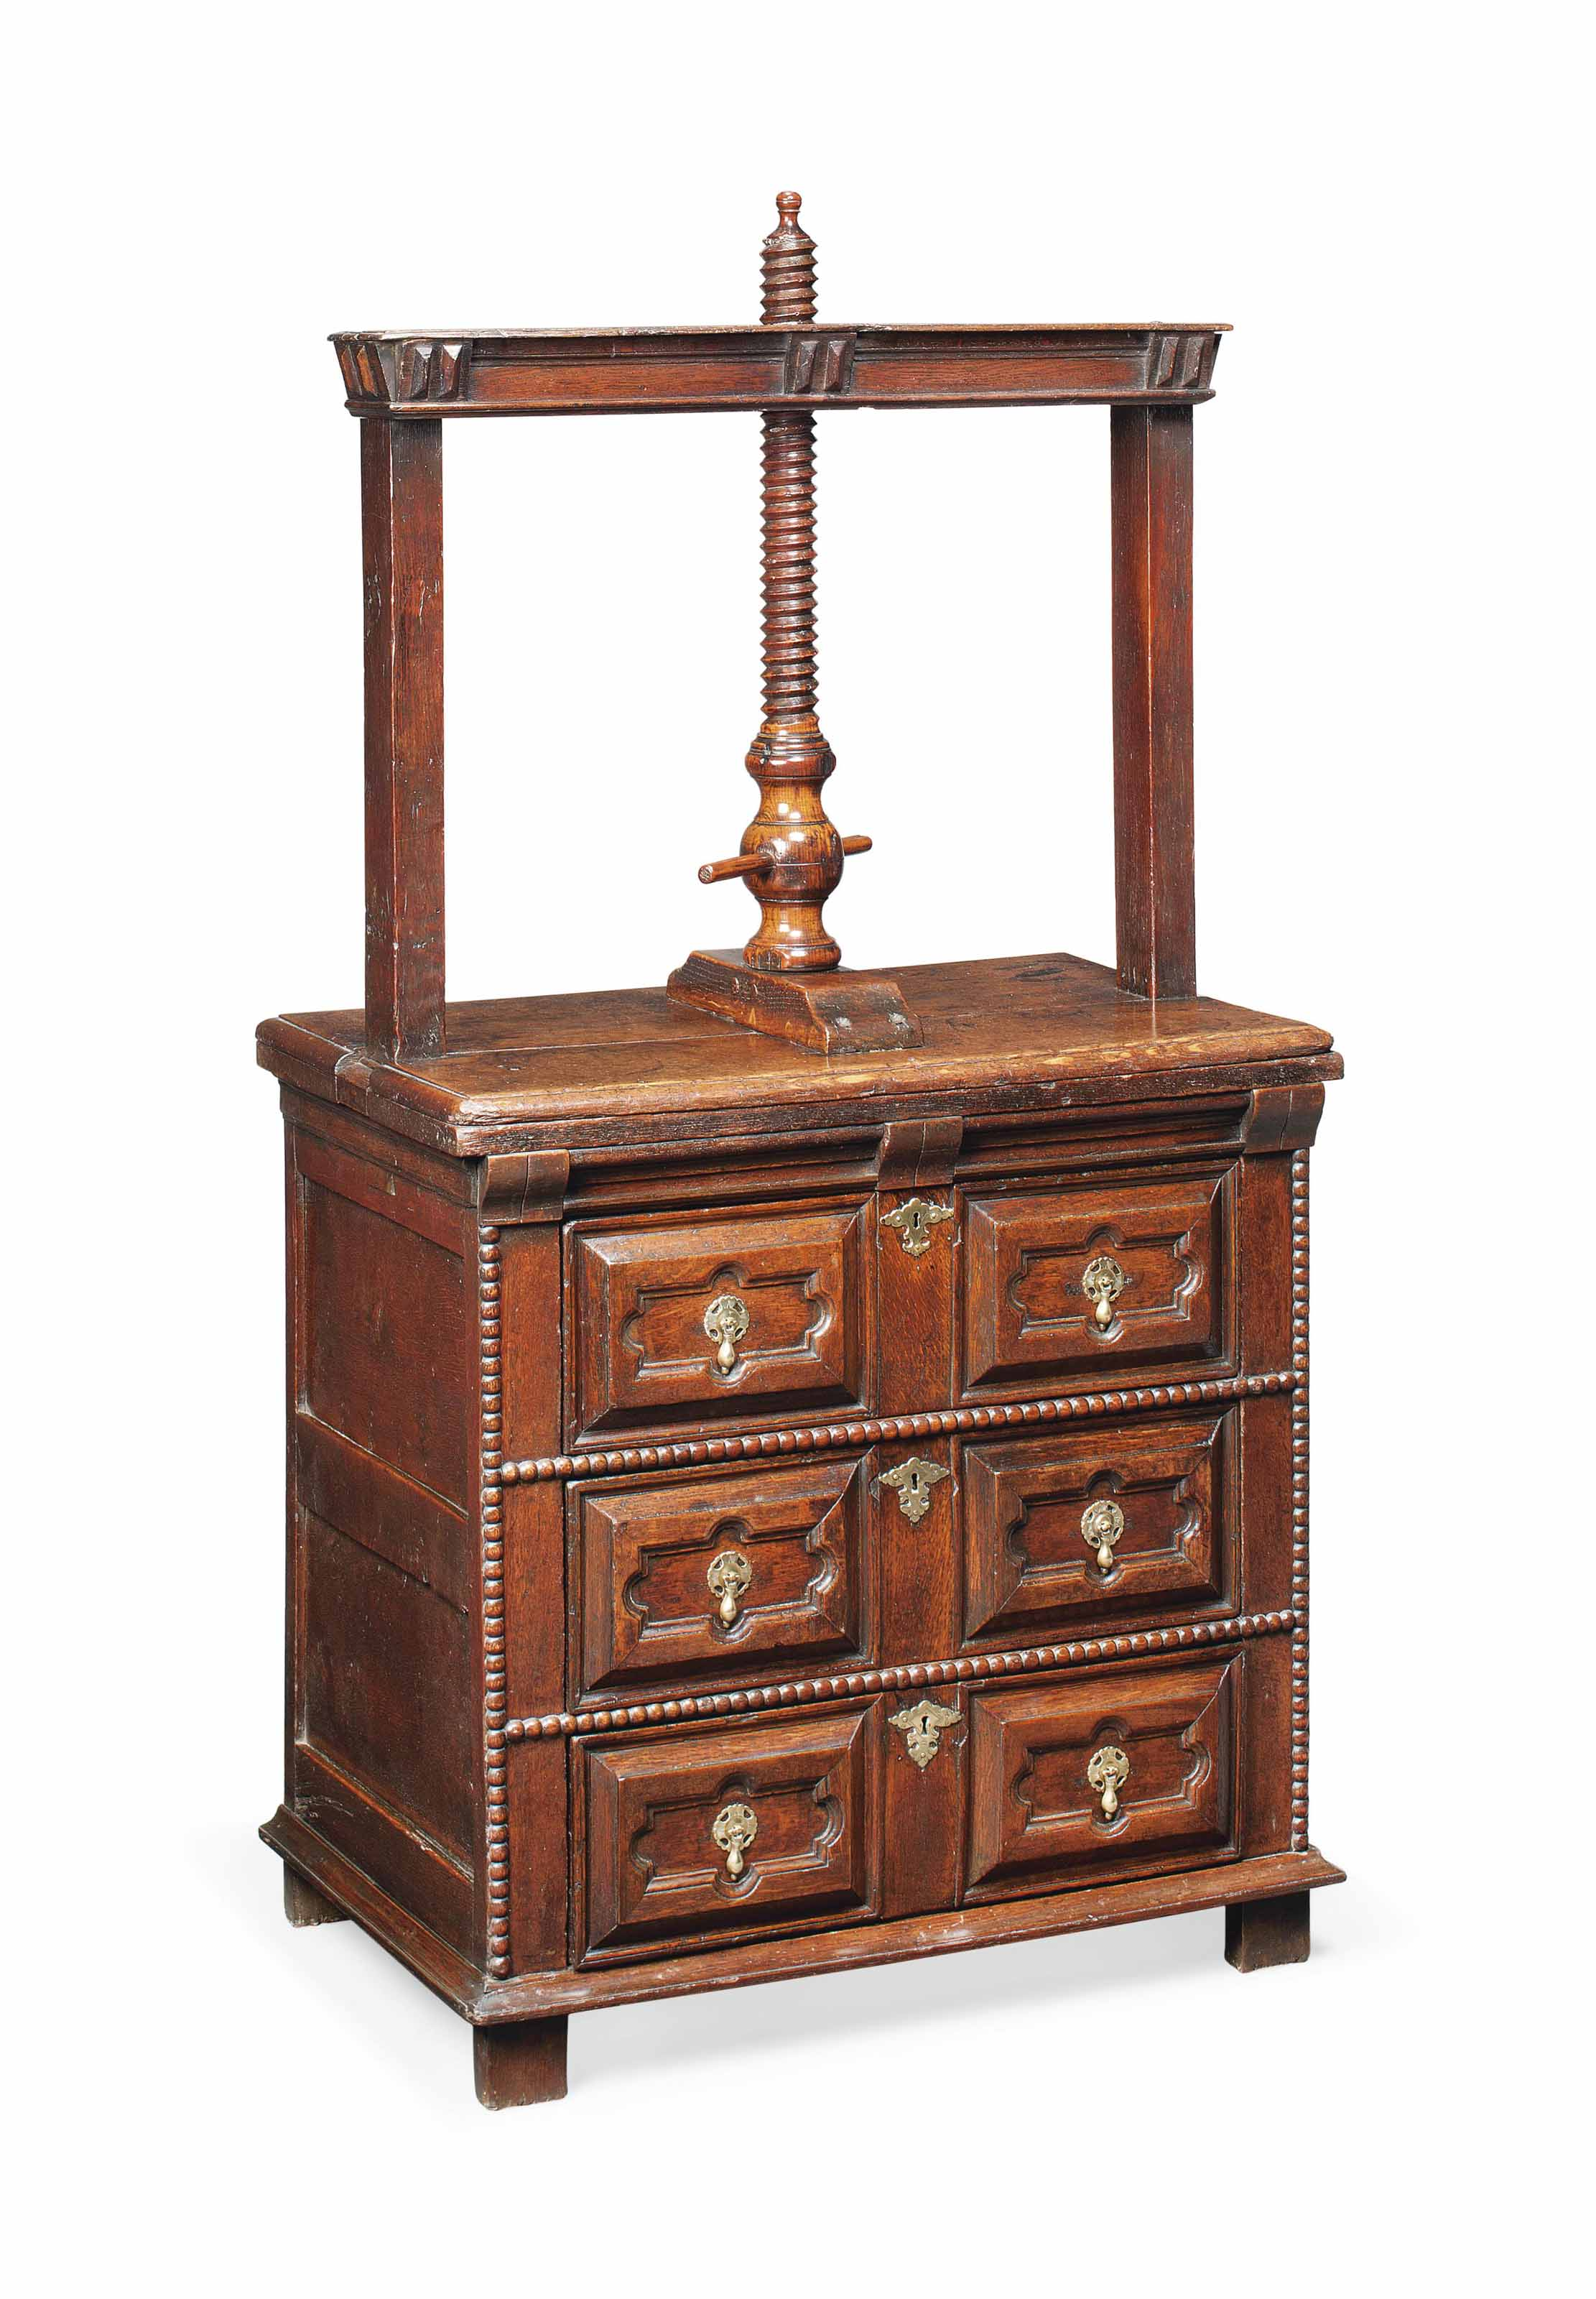 A WILLIAM AND MARY OAK CHEST WITH PRESS